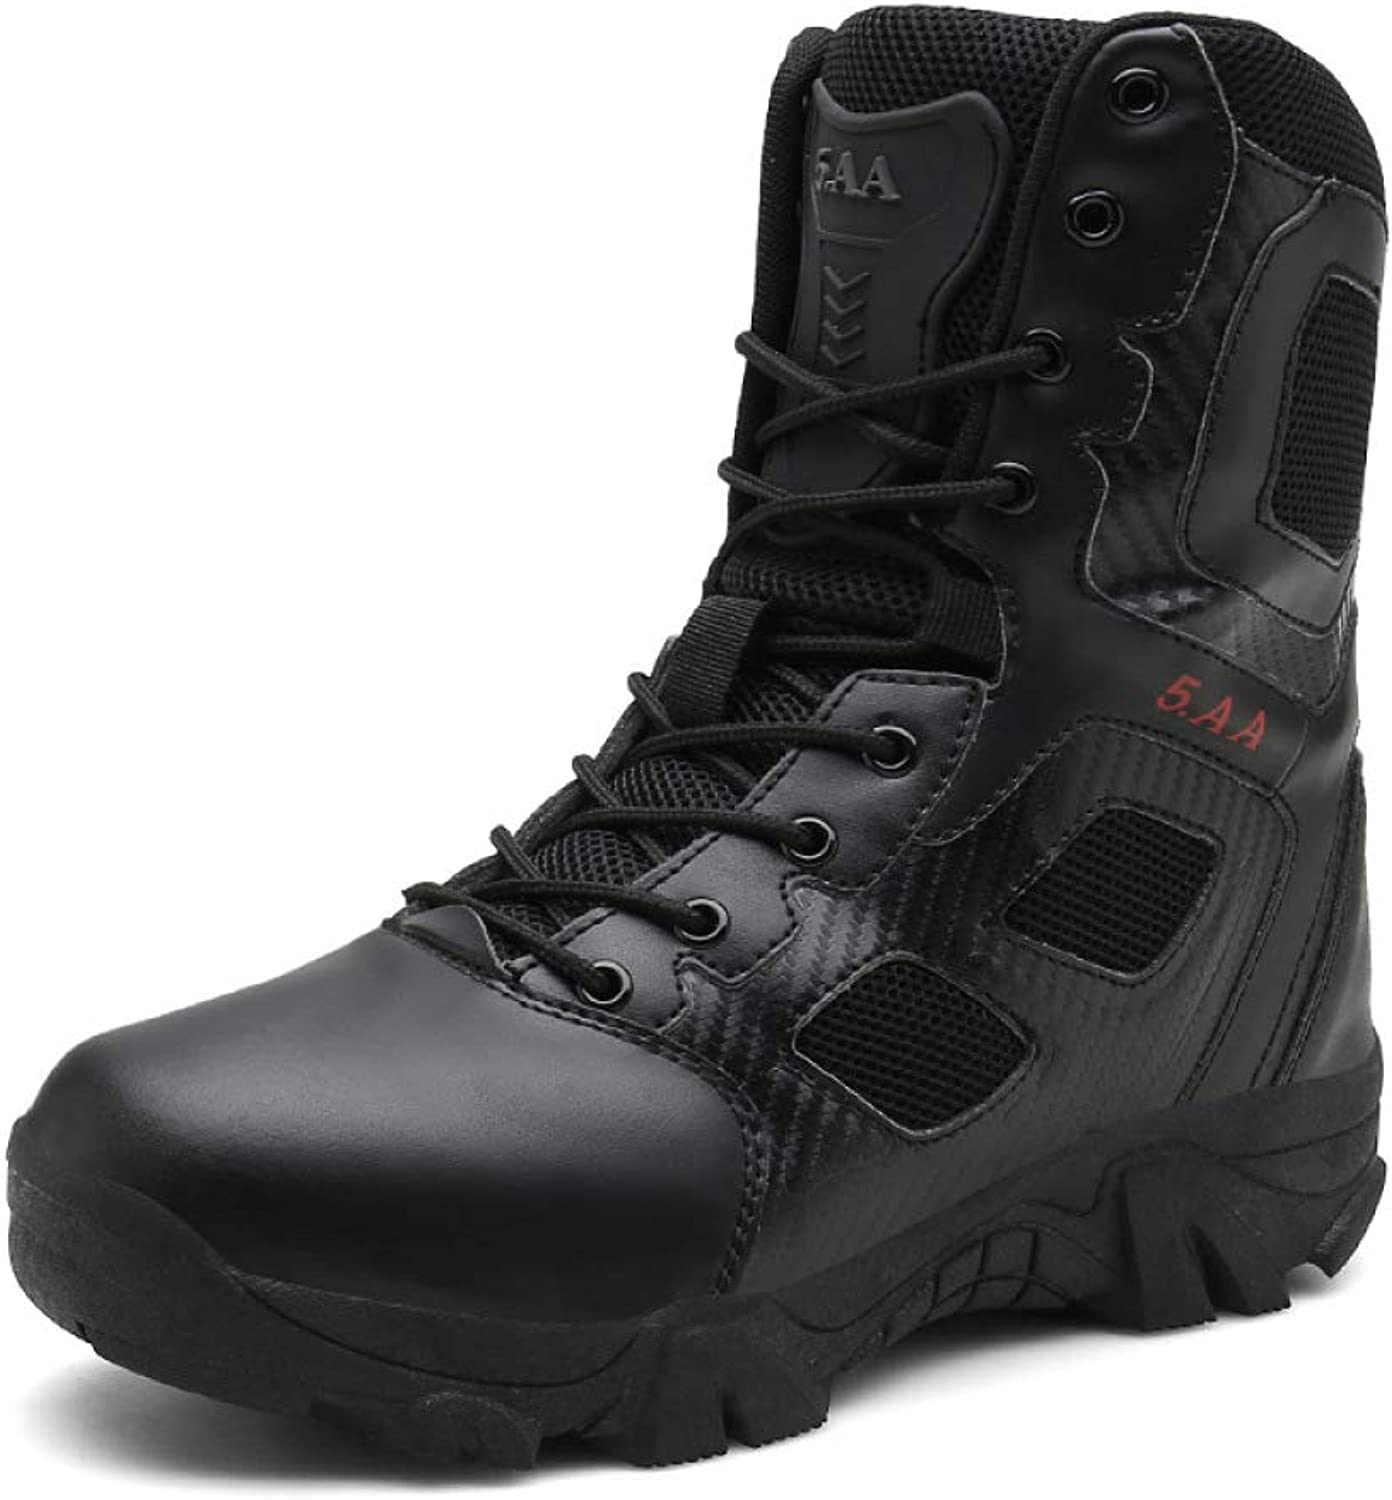 Tactical Boots Desert Men's Non-slip Training Military Boots Hiking Mountaineering Combat Boots